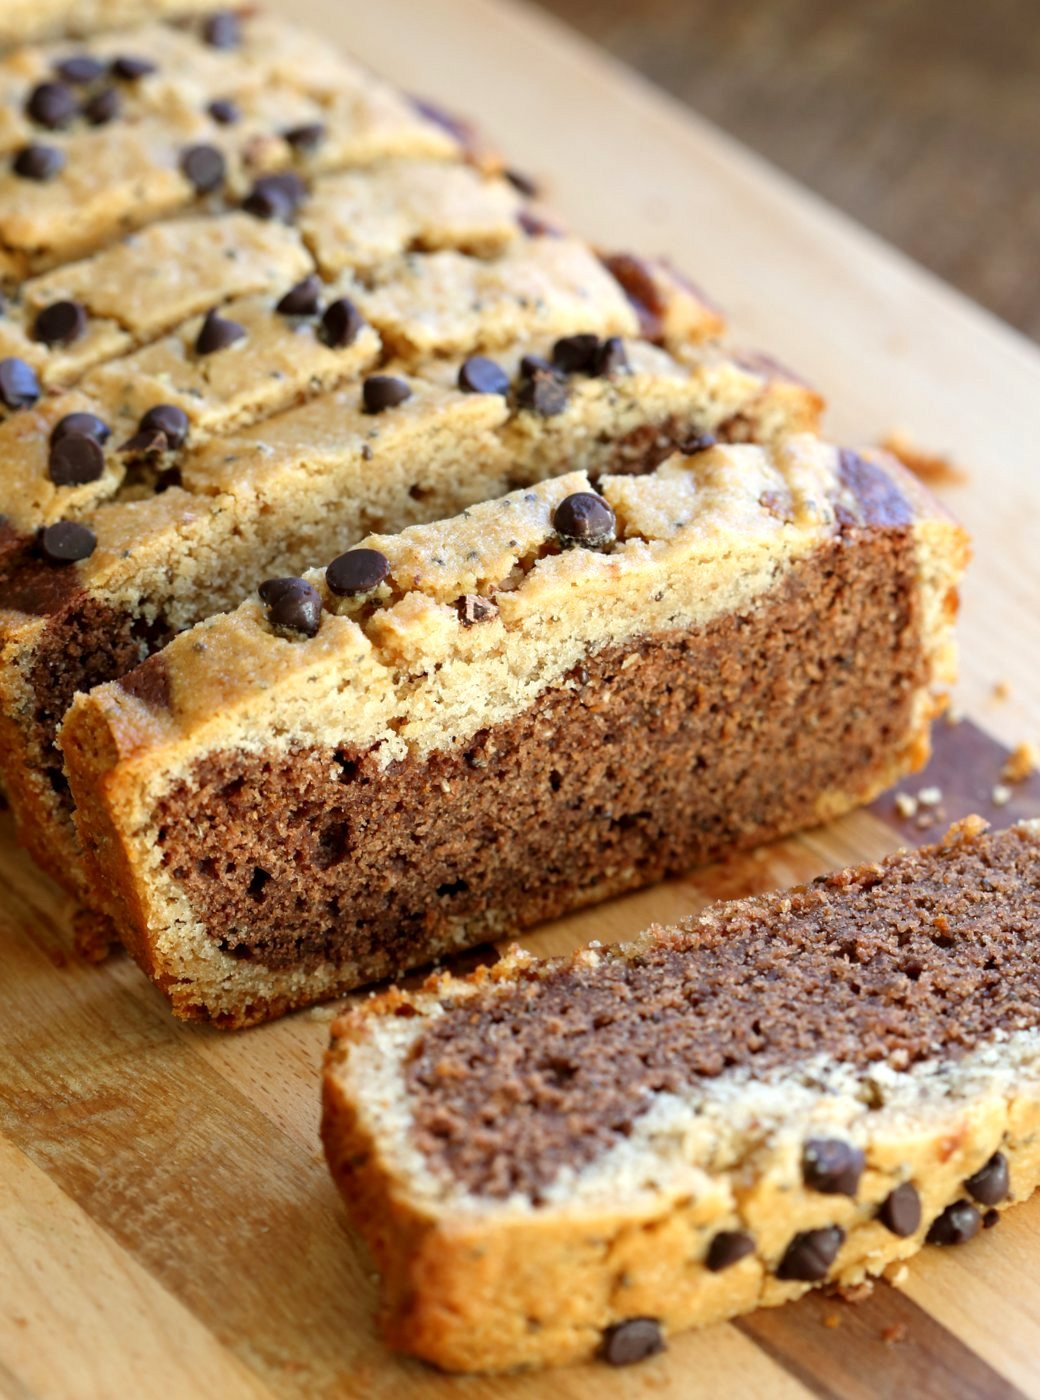 Gluten And Dairy Free Cake Recipes Easy  Gluten free Cashew or Peanut Butter Chocolate Marble Cake